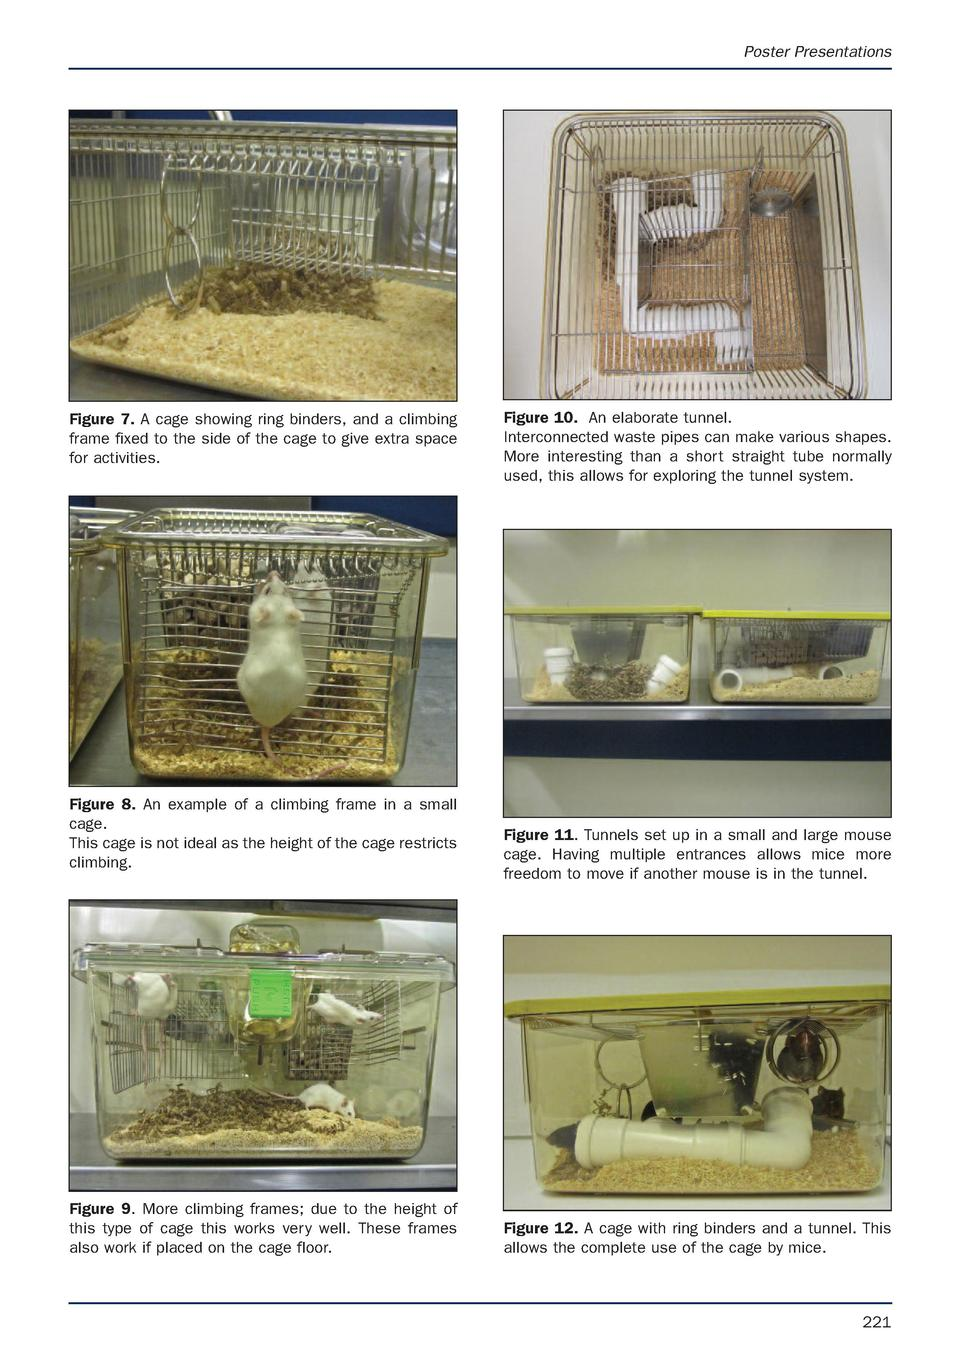 Poster Presentations  Figure 7. A cage showing ring binders, and a climbing frame fixed to the side of the cage to give ex...